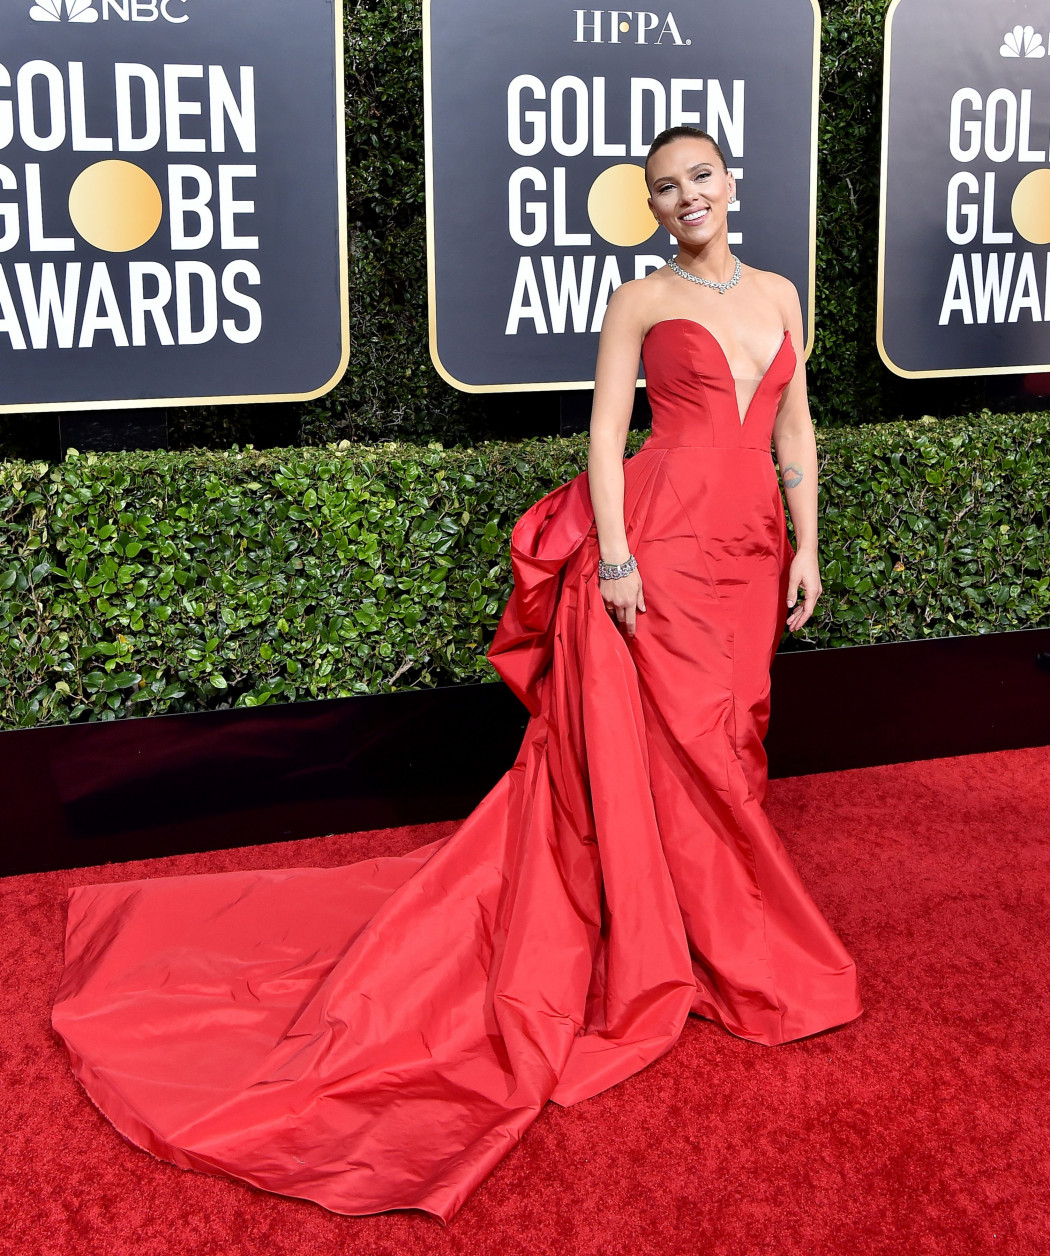 Golden Globes 2020 : les plus beaux looks du tapis rouge - 12